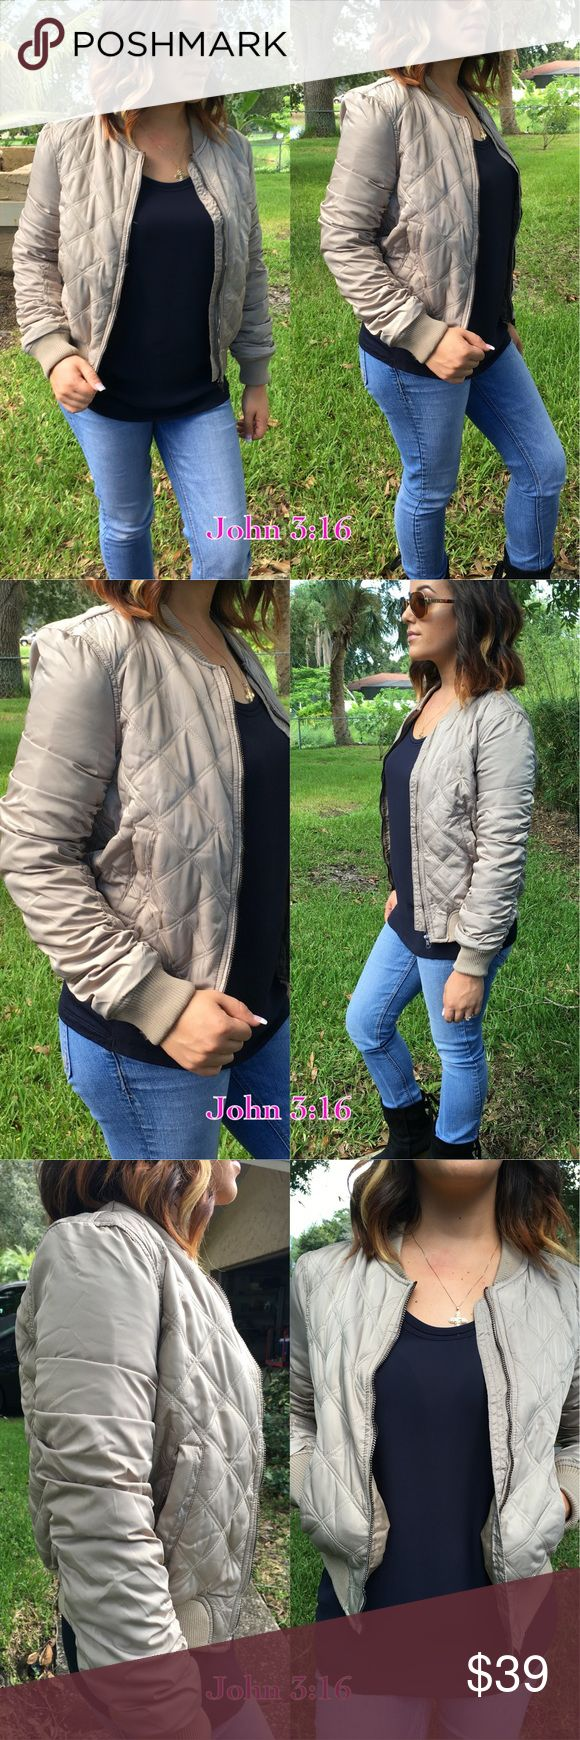 Taupe quilted bomber jackets Great fall staple and on trend with this fun bomber jacket in taupe. 100% polyester. Price is firm! TTS - S(2/4) M(6/8) L(10/12) XL(14) Jackets & Coats